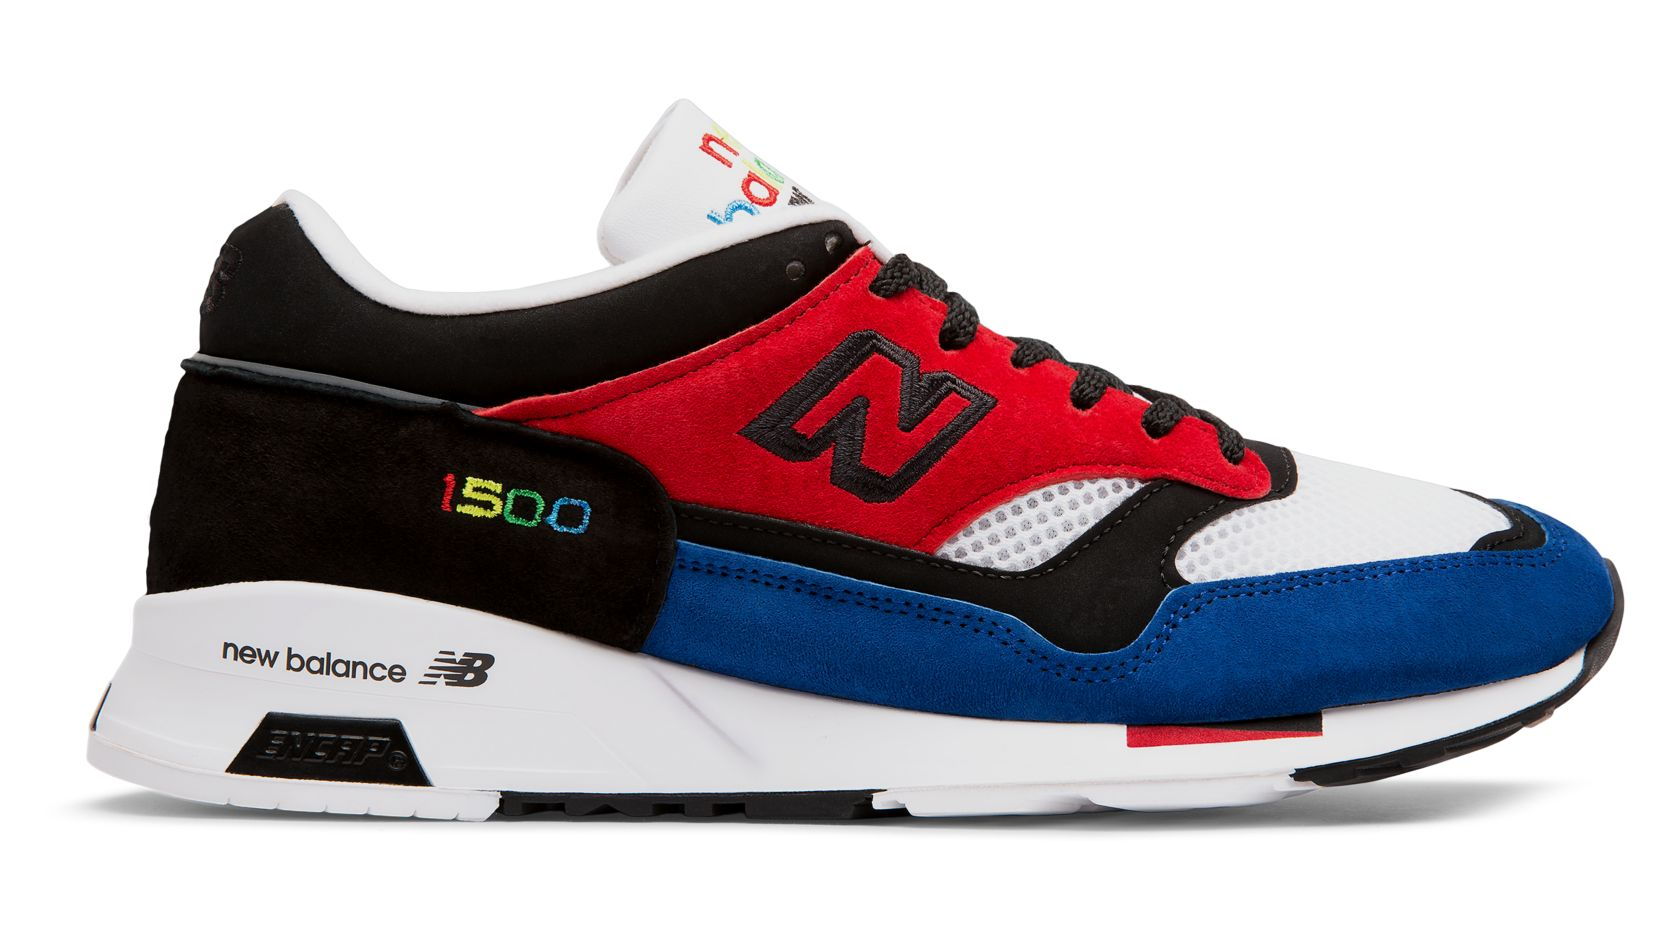 new balance 1500 made in uk red